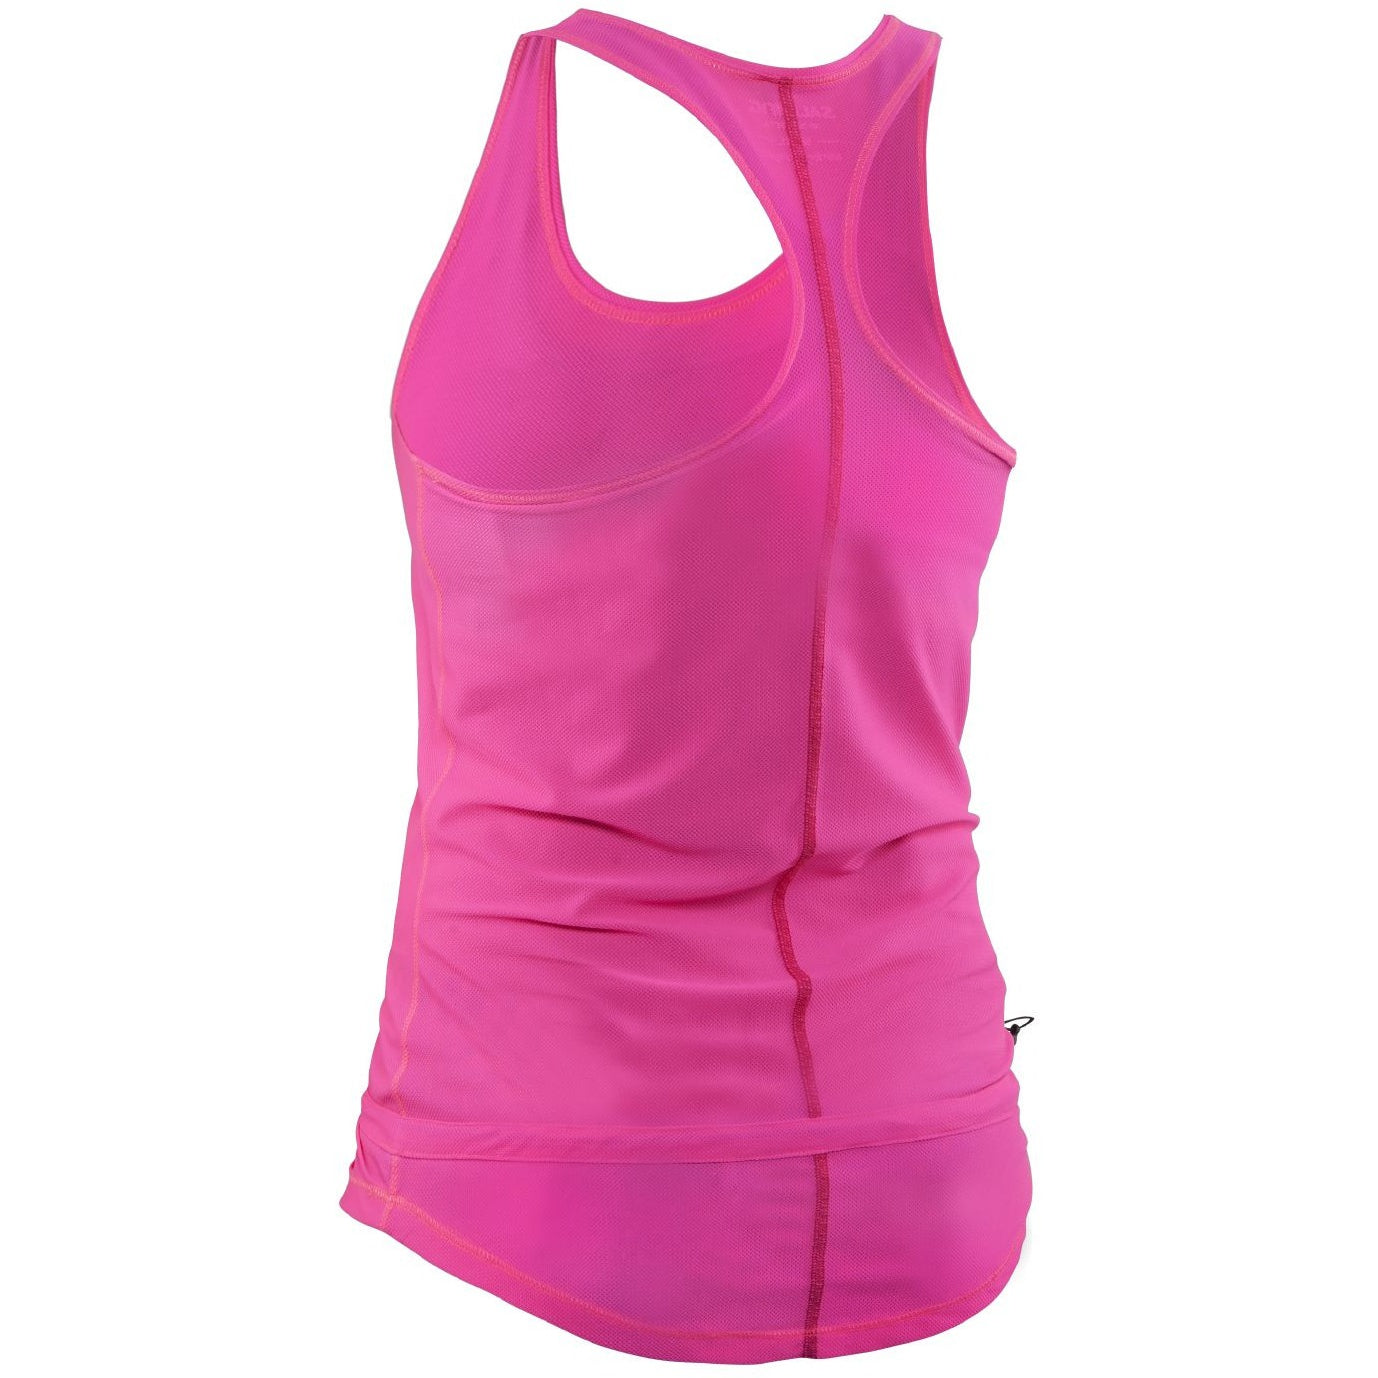 Racerback Top - Knockout Pink